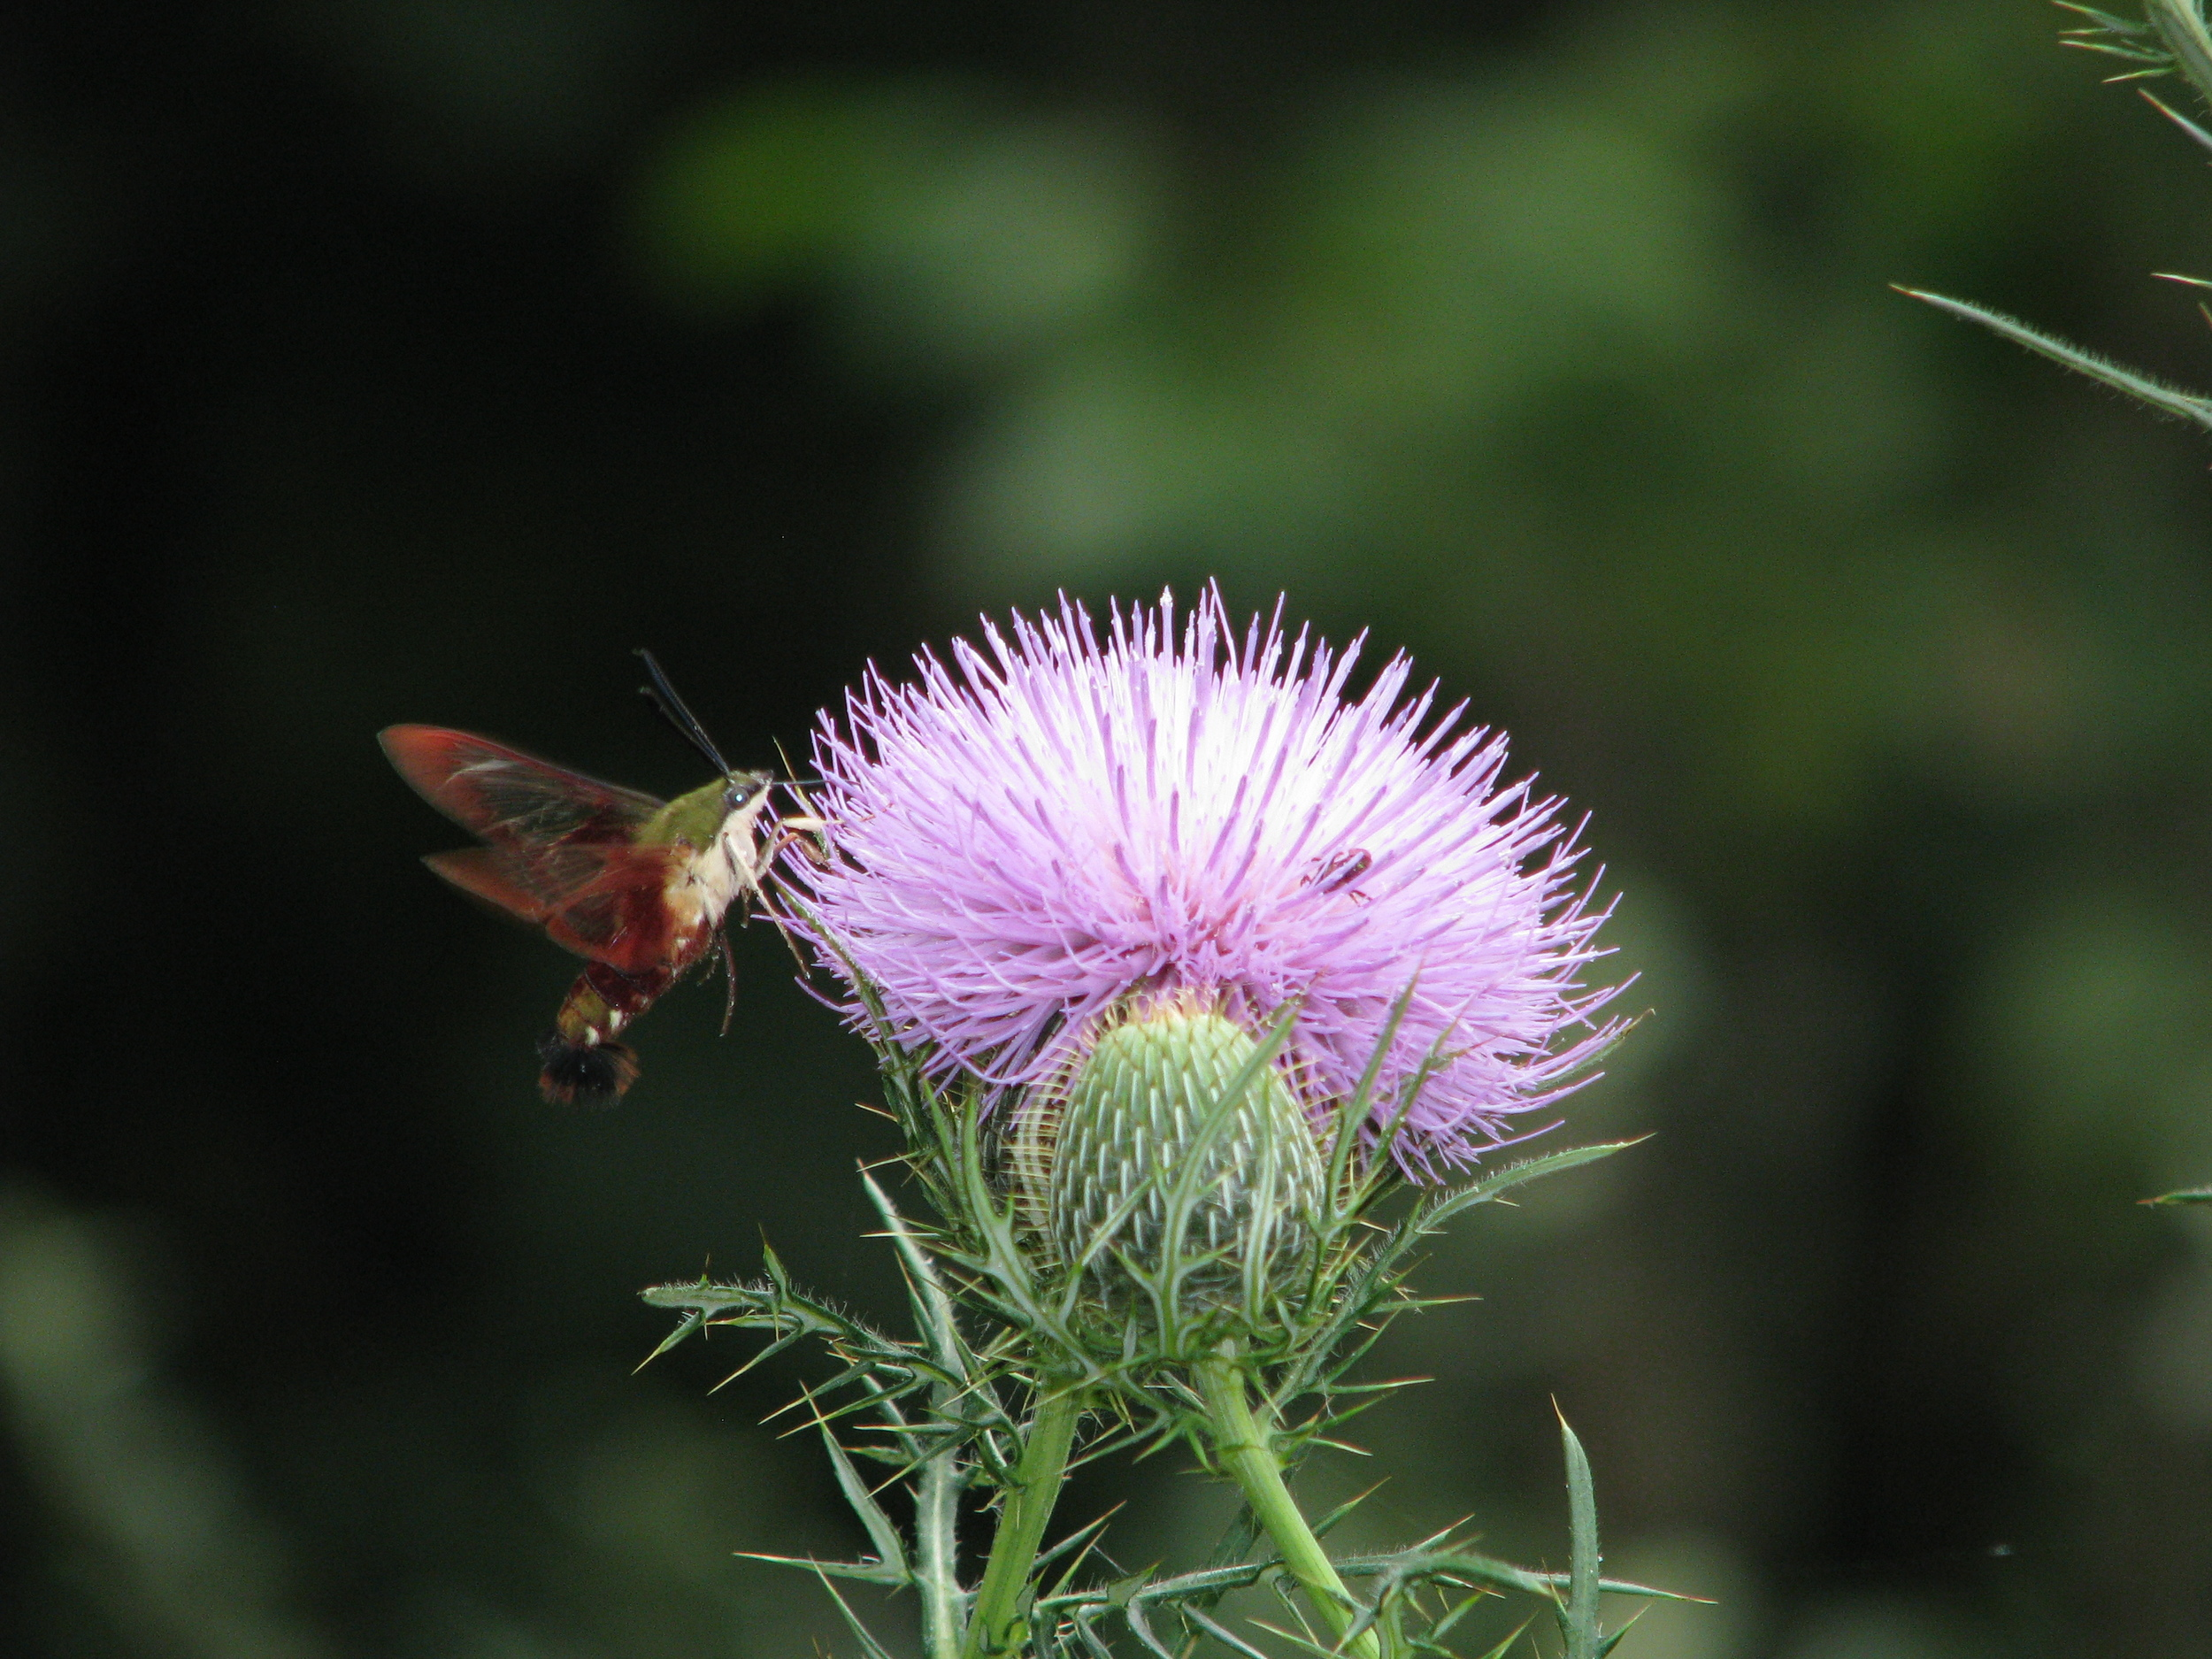 Hummingbird Clearwing Moth, active during the day.